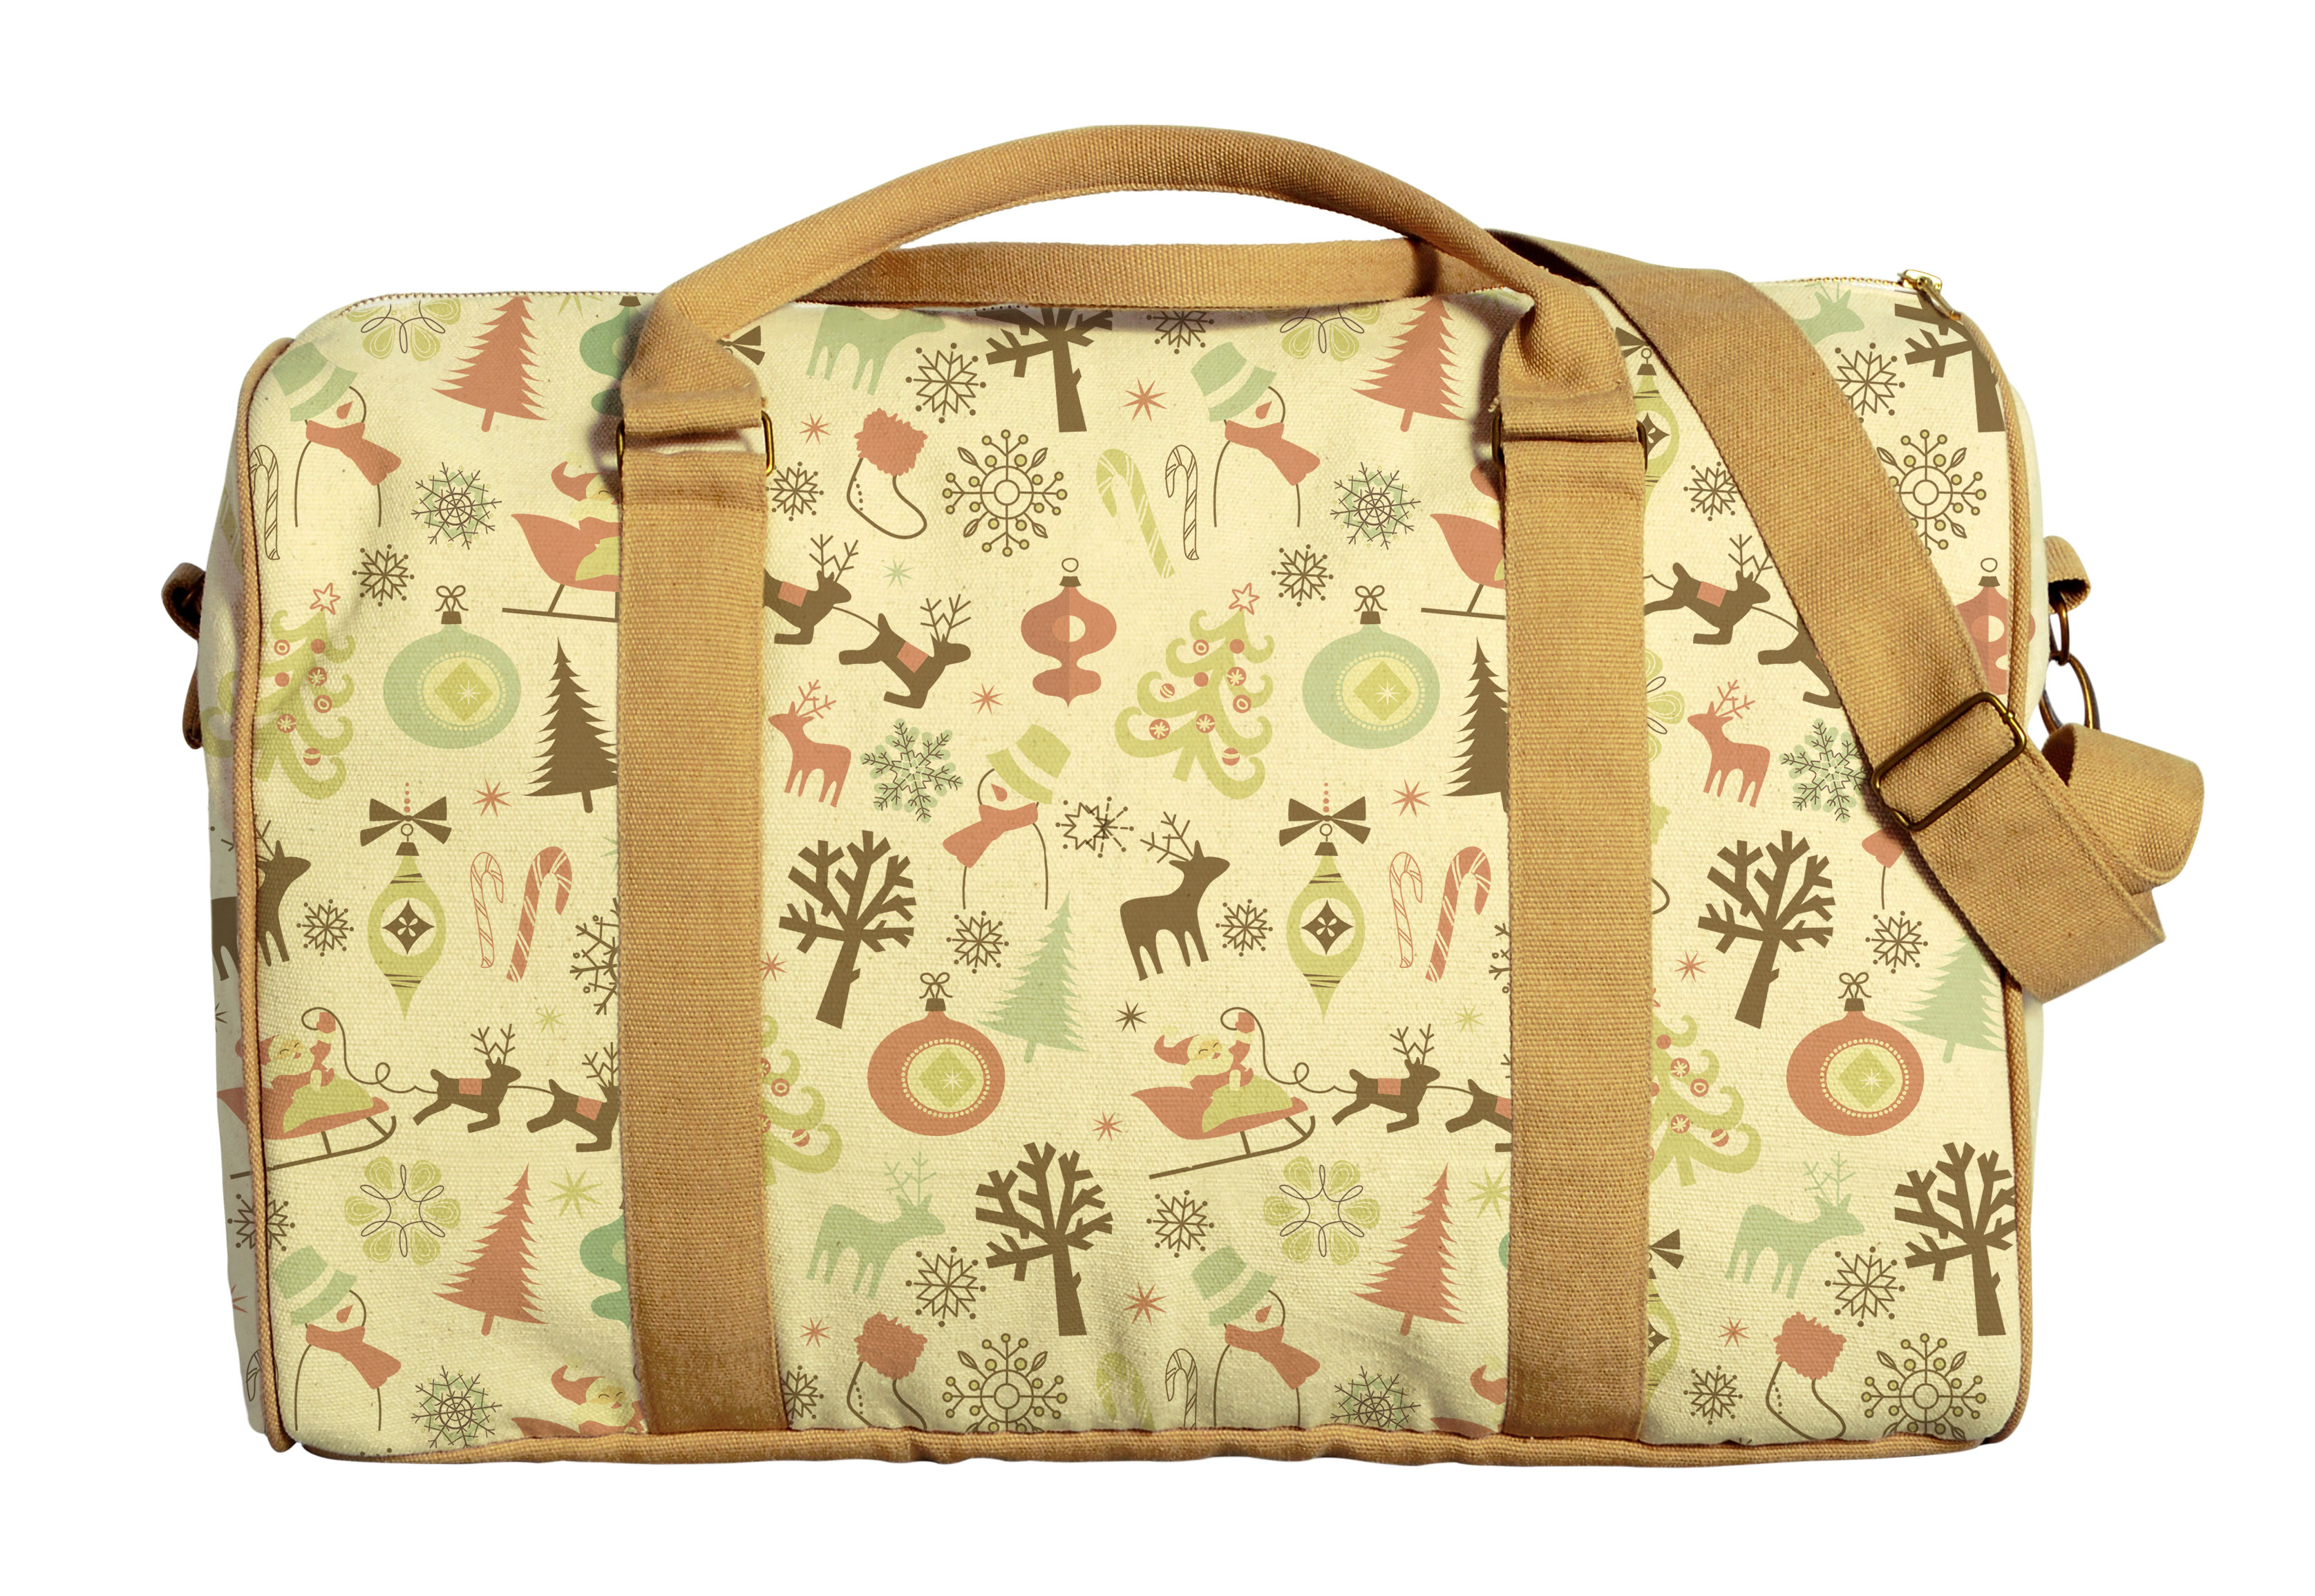 Christmas Ornament-2 Printed Oversized Canvas Duffle Luggage Travel Bag WAS_42 by Vietsbay